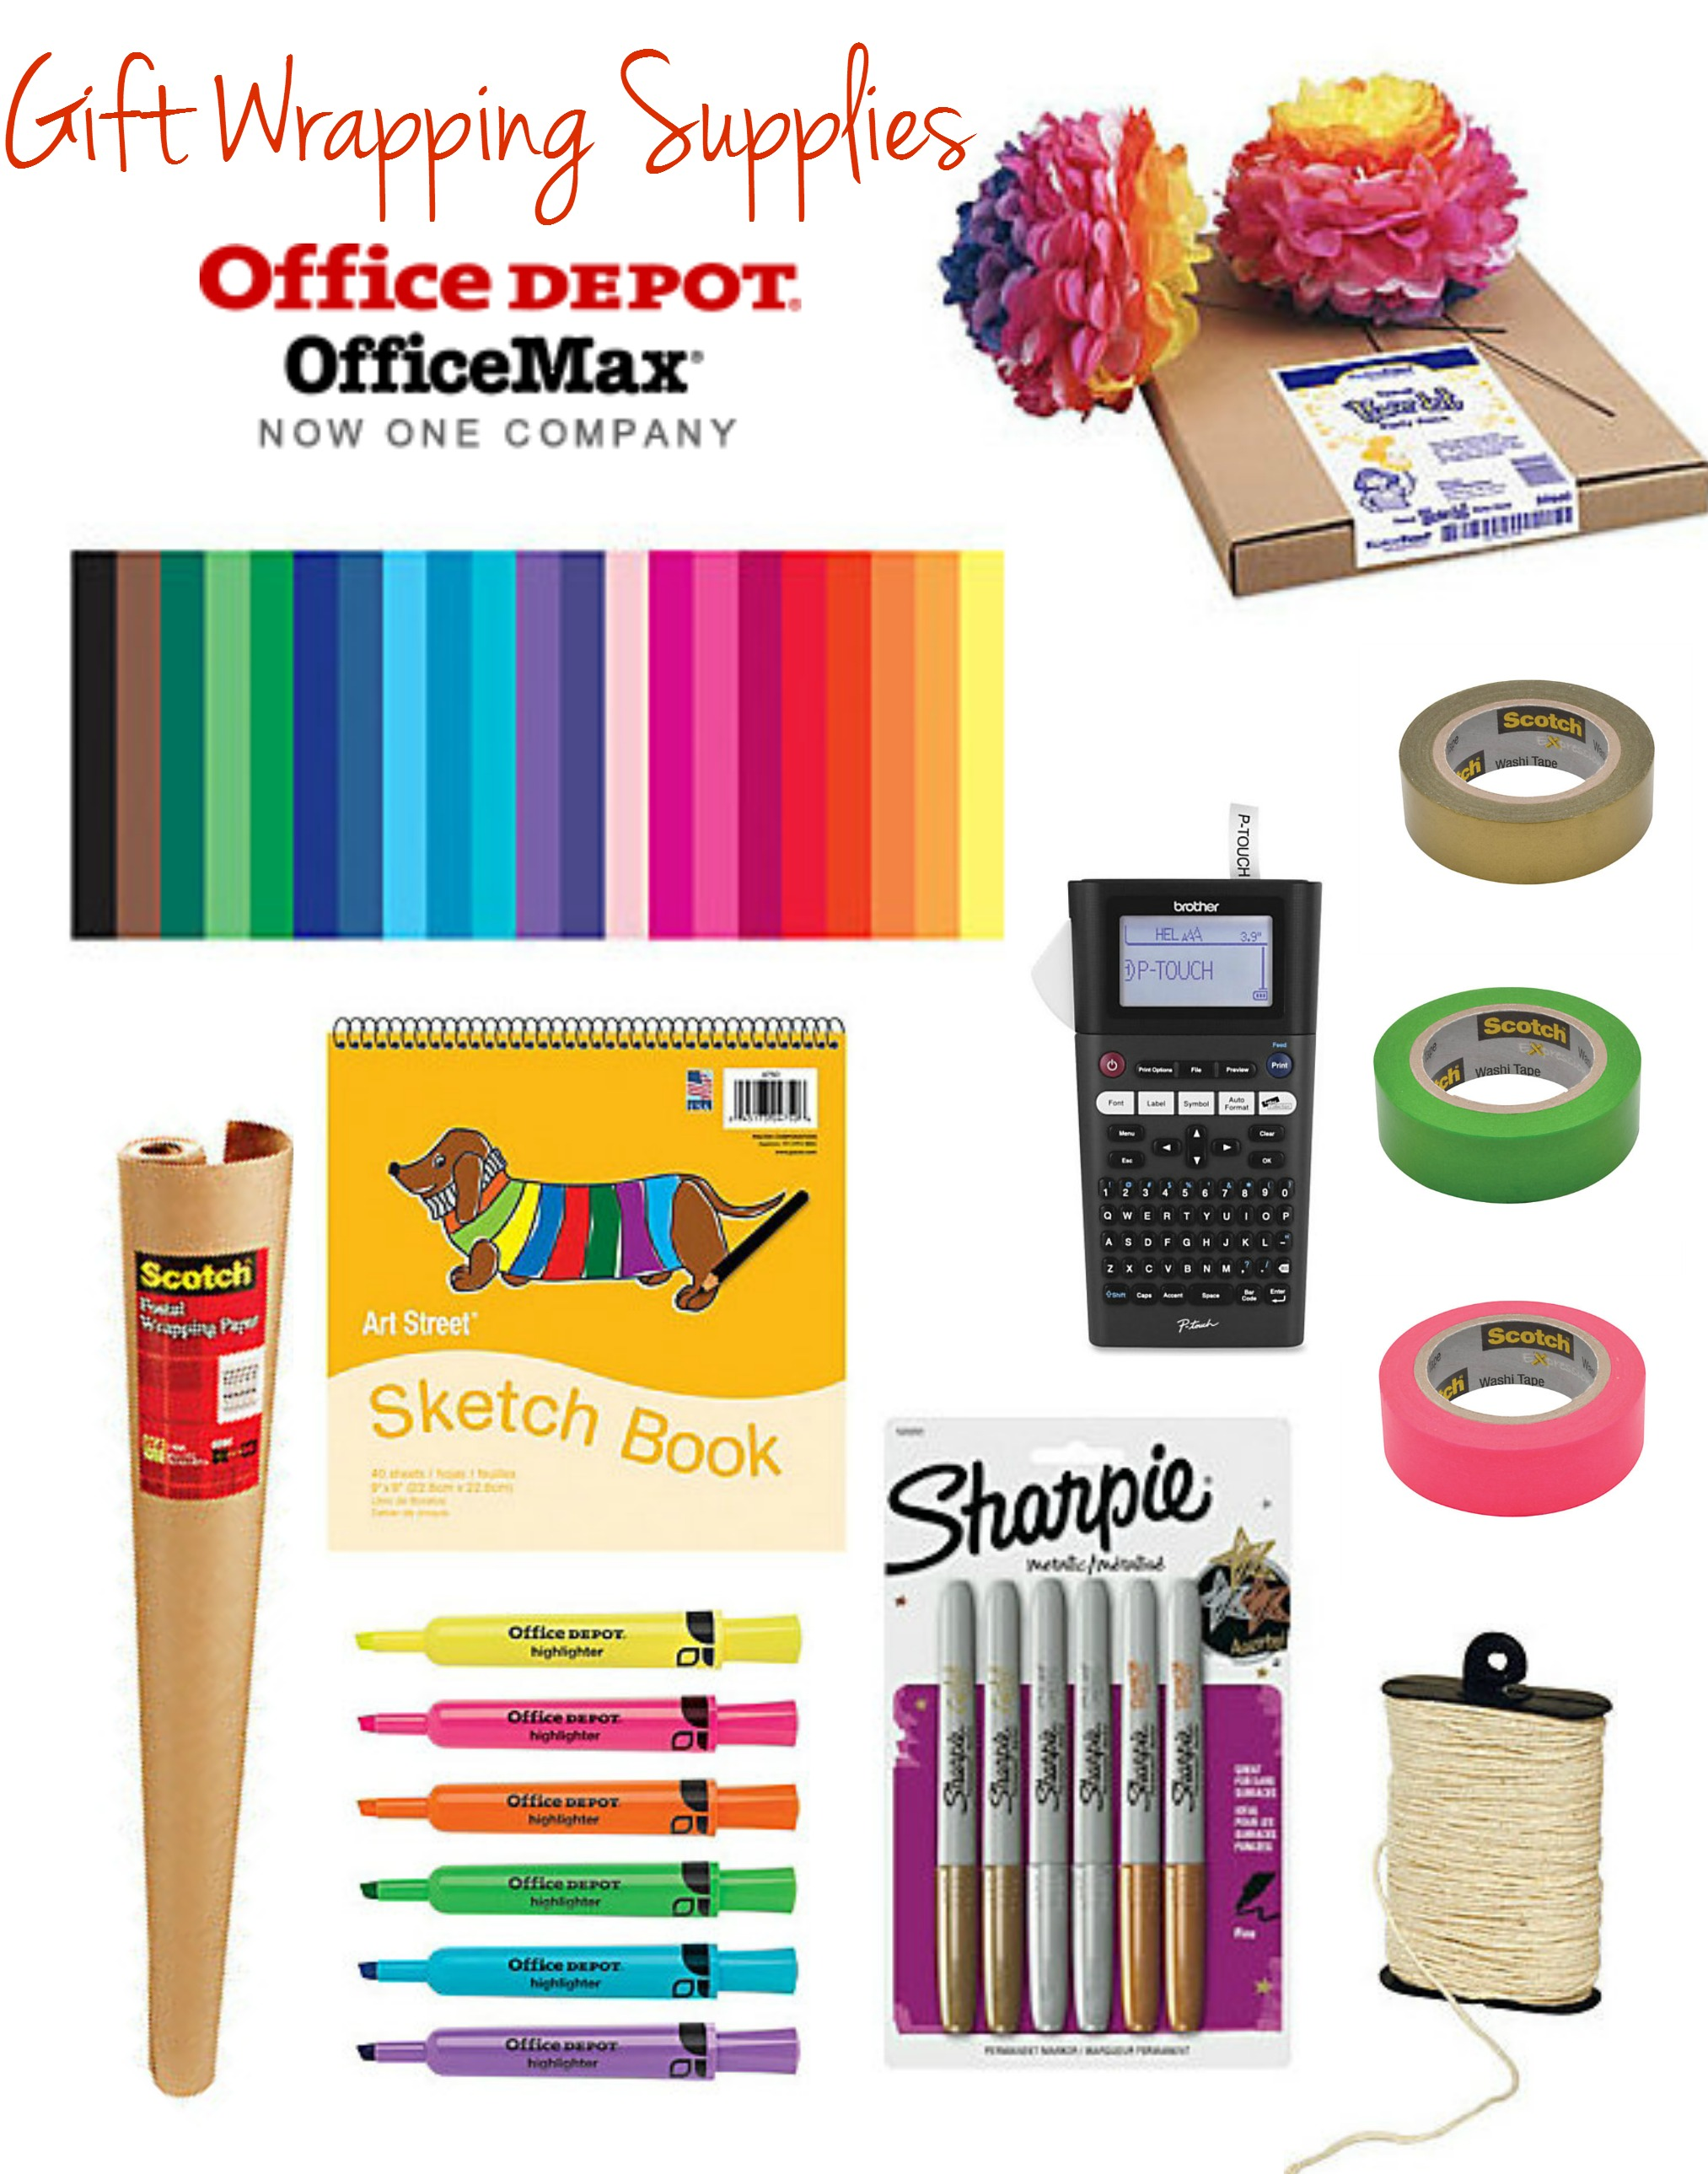 Color printing office depot - Print Color Pages Office Depot Coloring